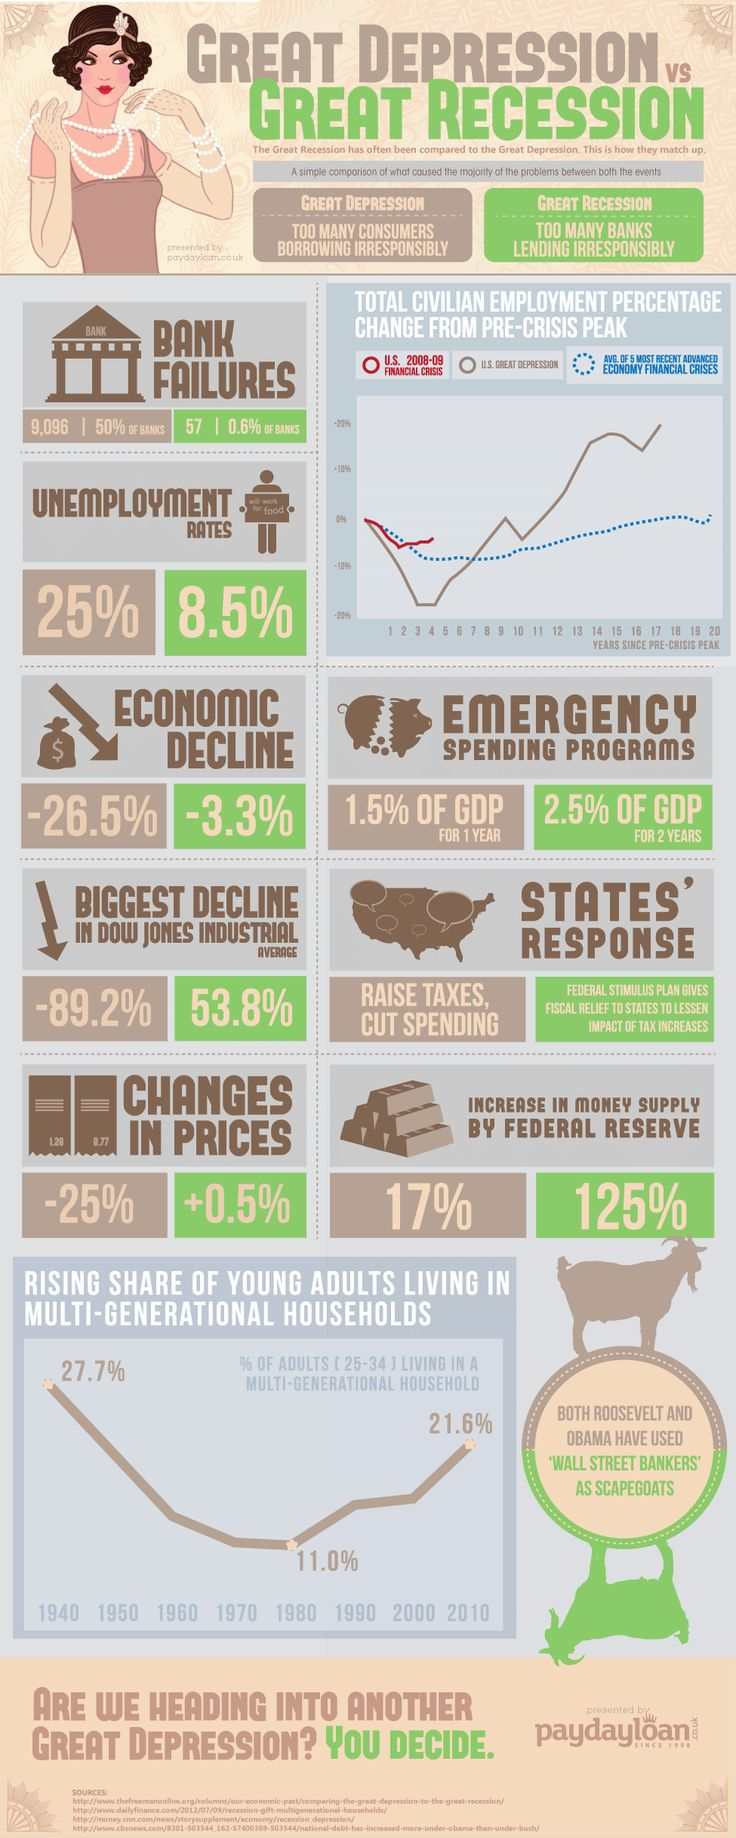 Comparing The Great Depression To The Great Recession [Infographic] - Business Insider